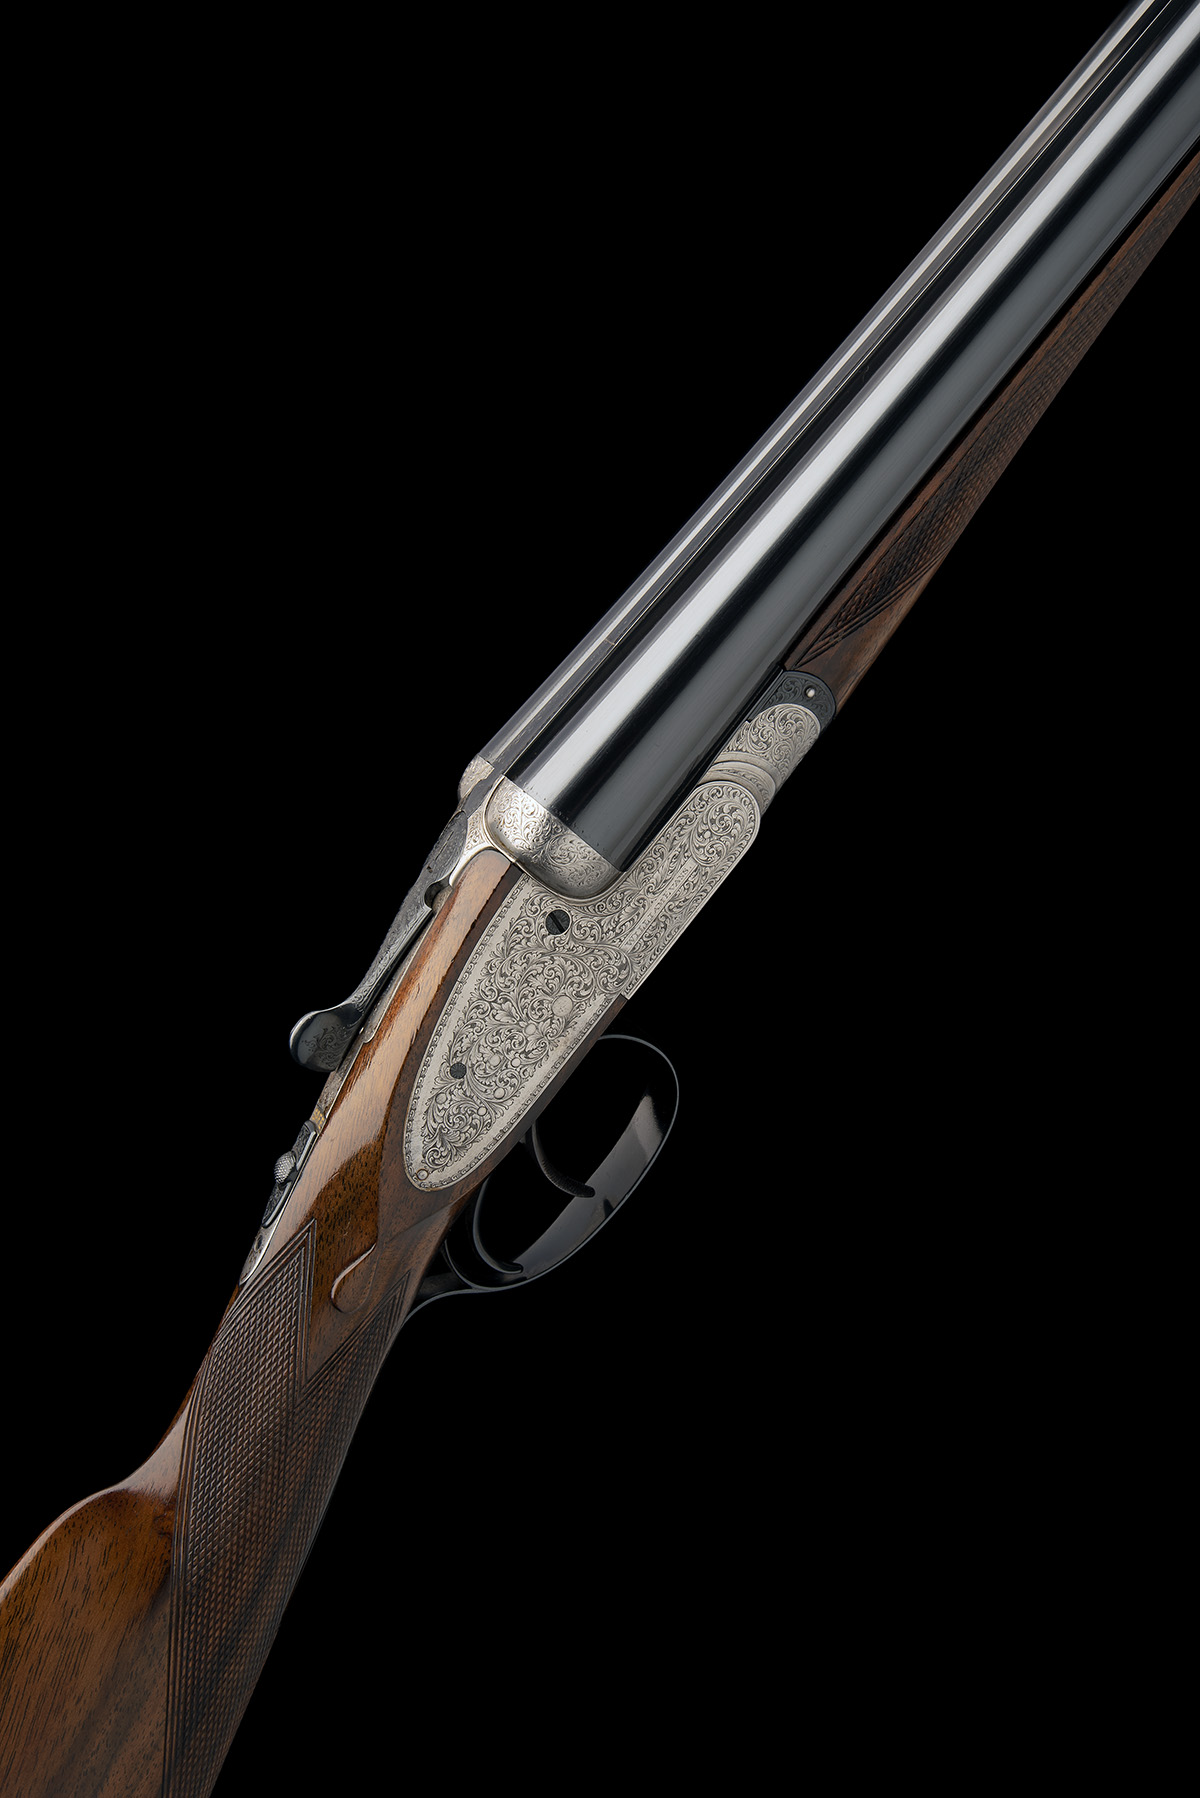 WILLIAM EVANS A 12-BORE SIDELOCK EJECTOR, serial no. 11547, for 1916, 28in. nitro barrels, the rib